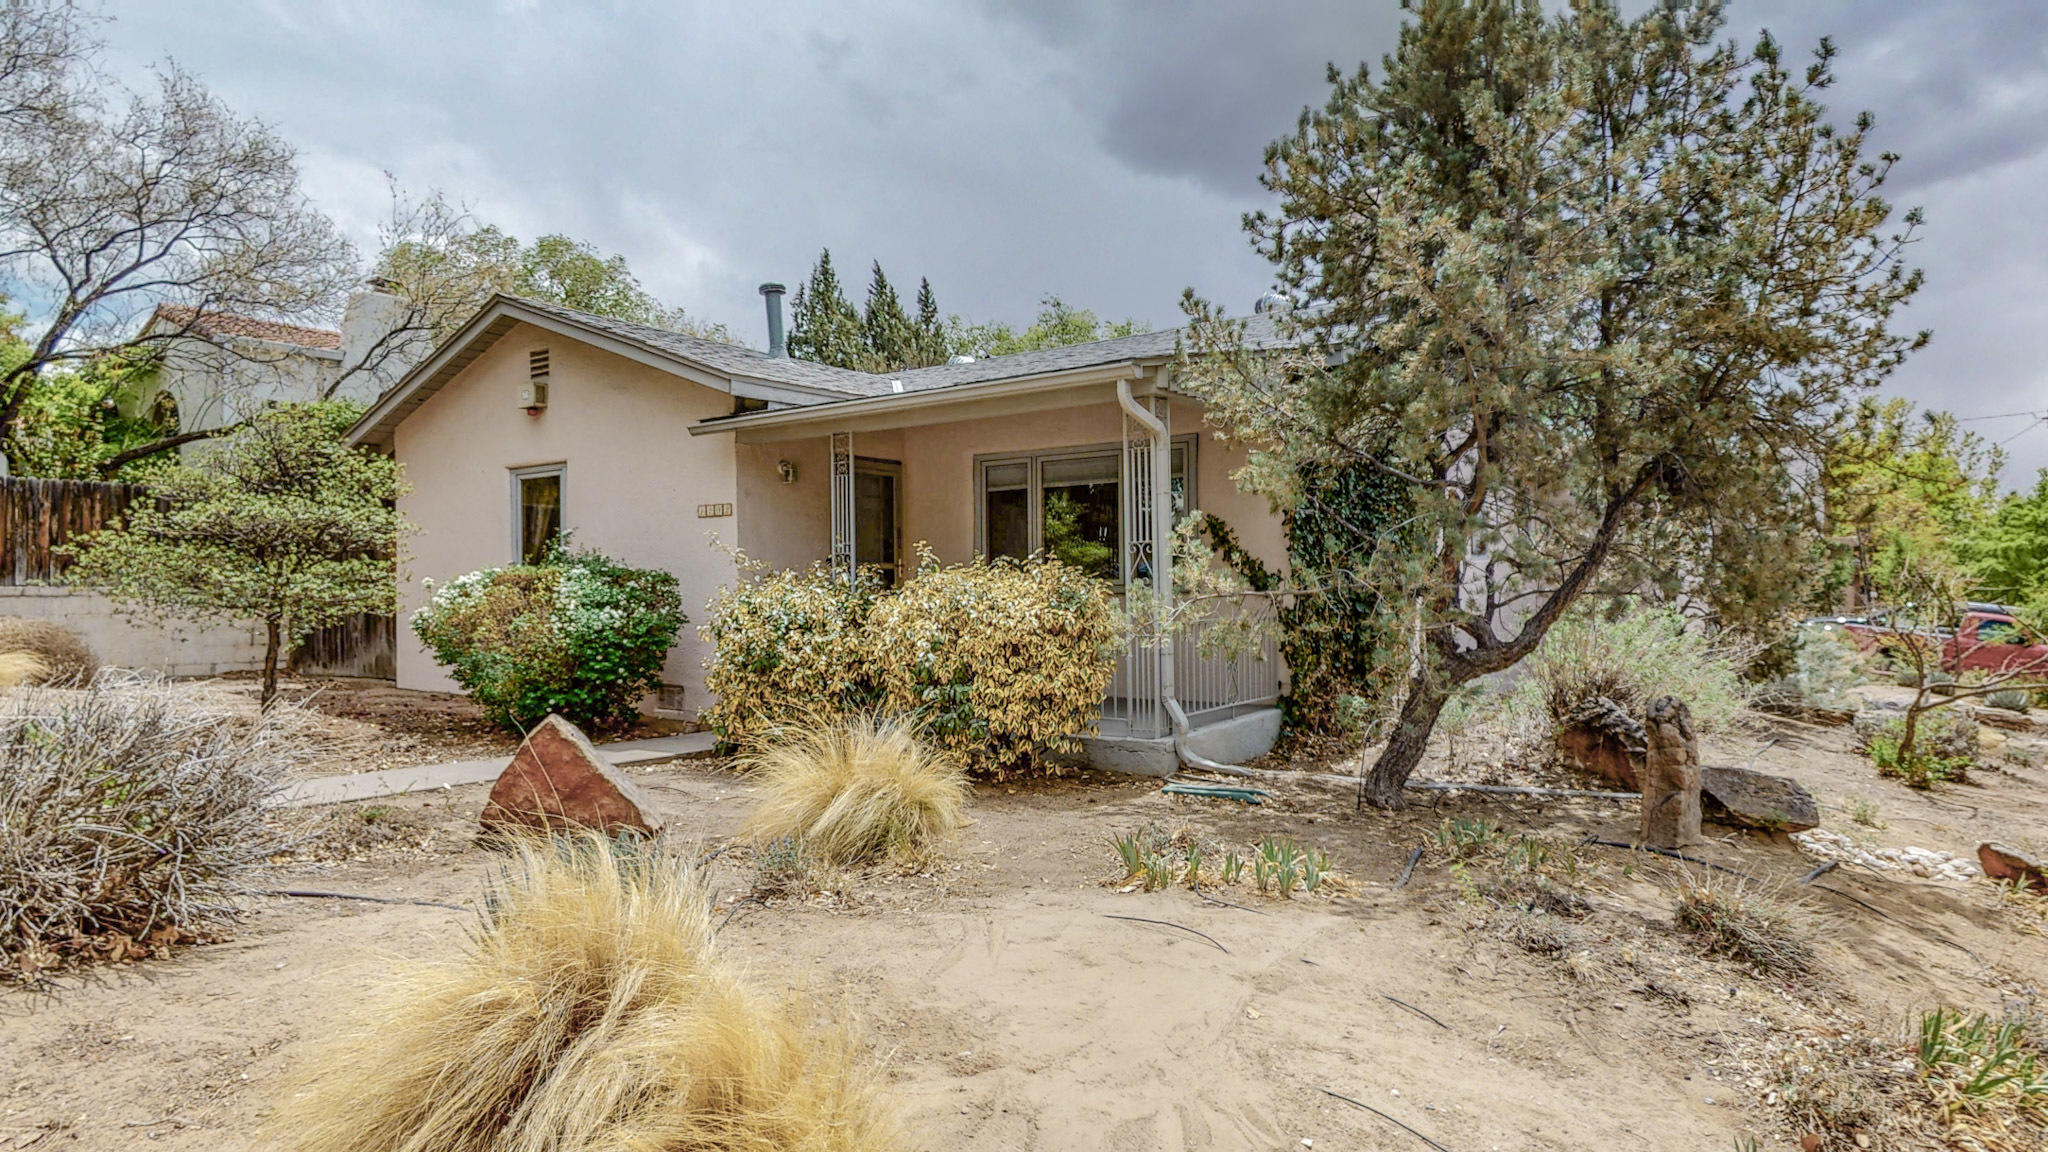 Great Home in Sensational Spruce Park! Hardwood Floors, Pella Windows, 3 Bedrooms, 2 Full Baths, Kitchen open to Dining Room with bar. Refrigerator and Washer/Dryer are included. Oversized 2 Car  Gargage includes workshop area. Close to UNM.